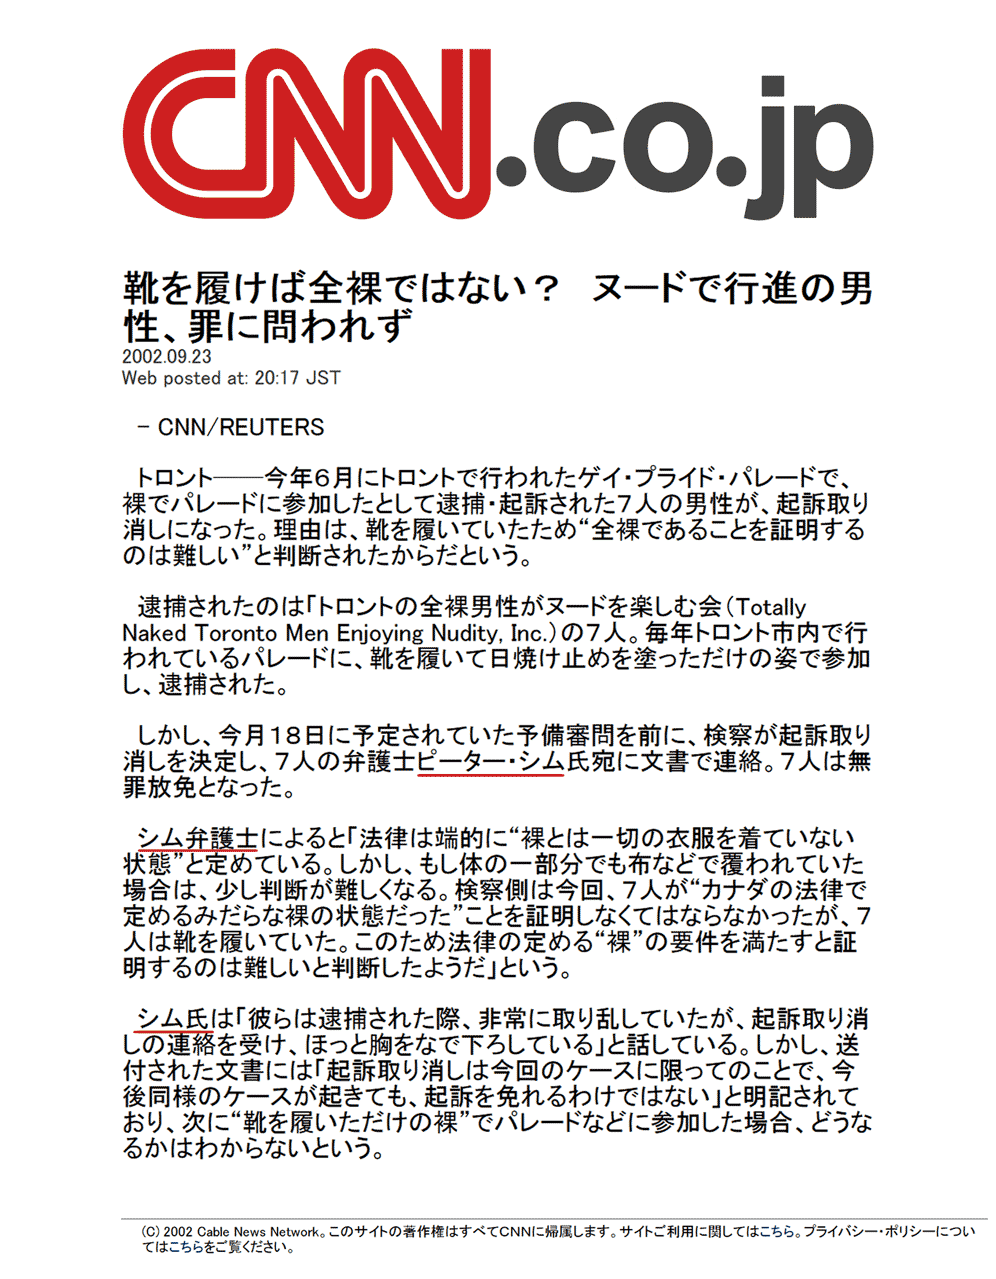 CNN.Japan 2002-09-23 - Simm convinces prosecutors to drop nudity charges against Pride marchers 2